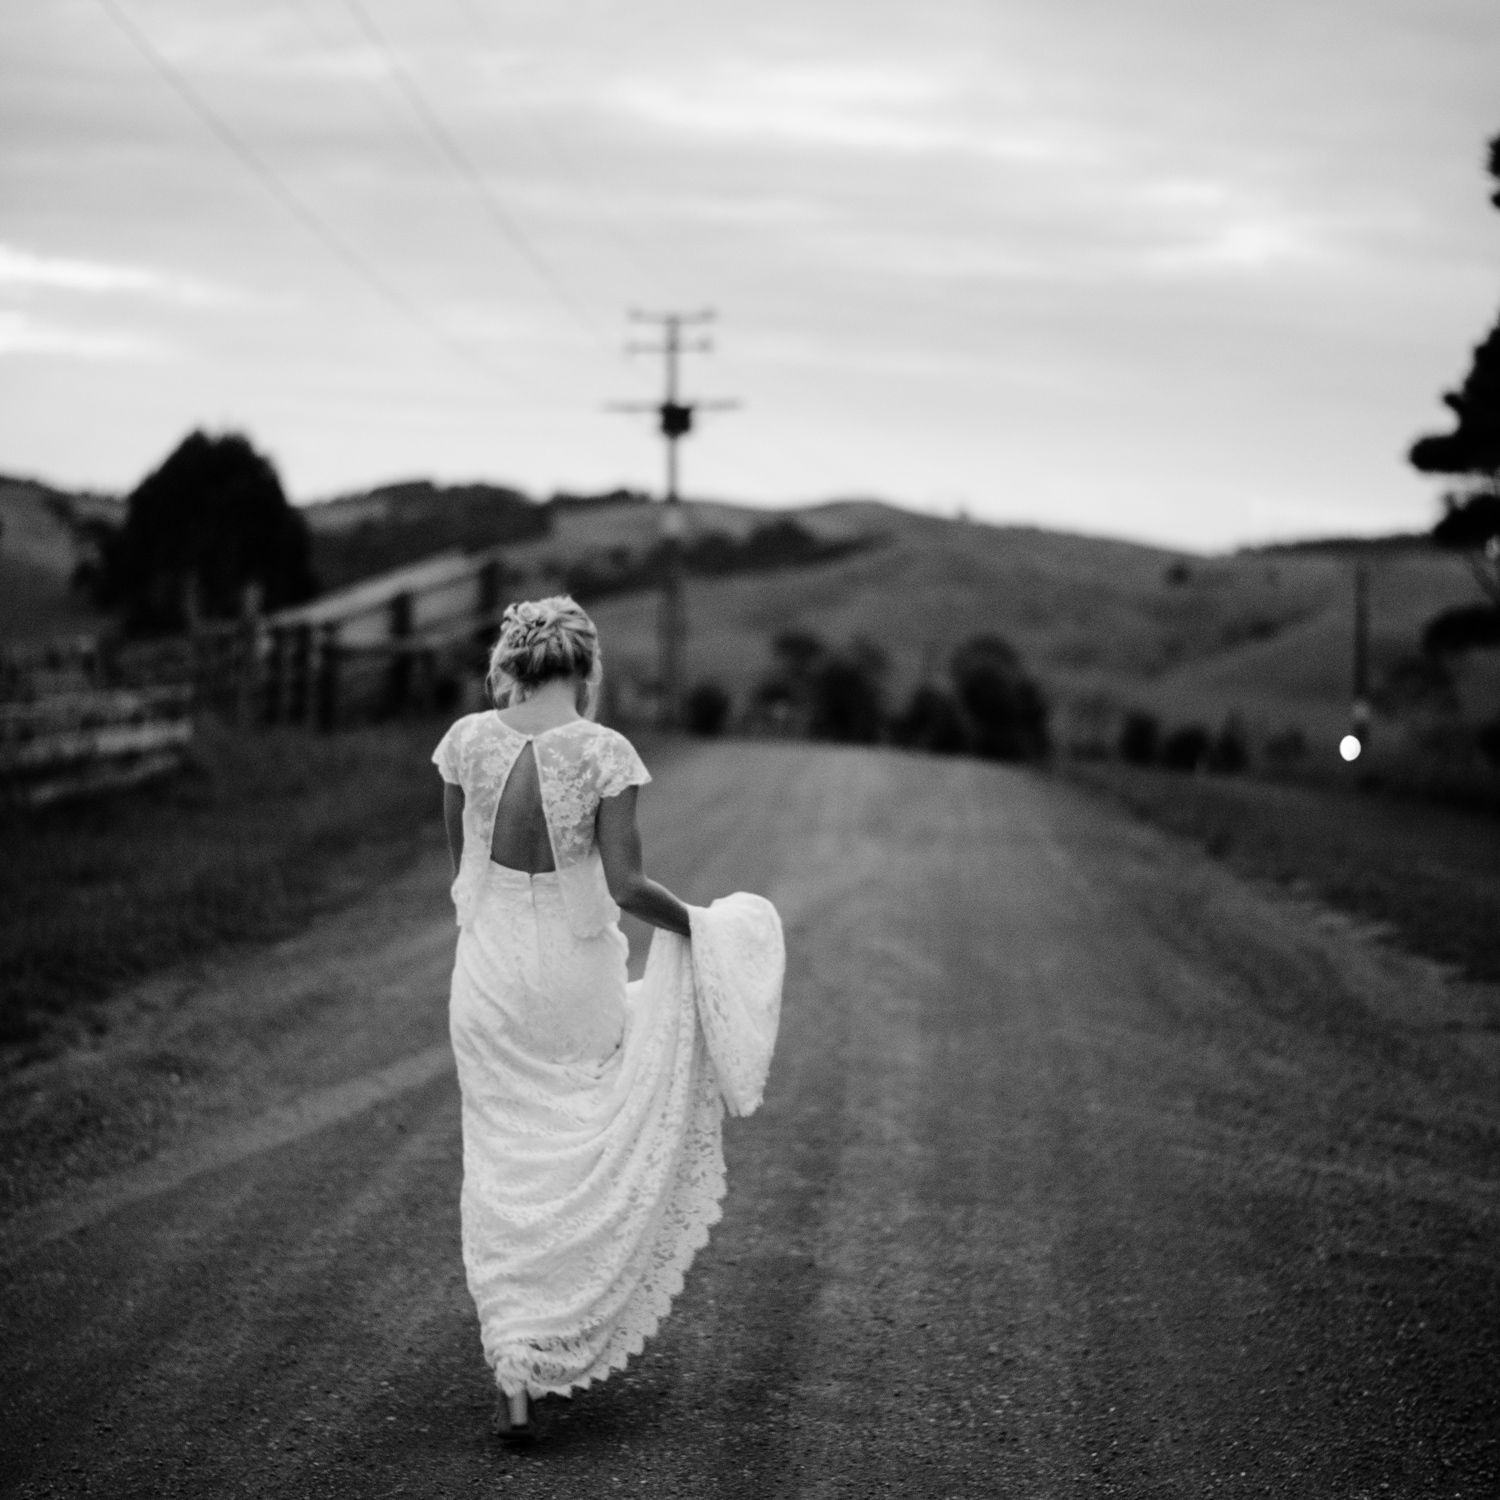 new-zealand-wedding-film-photographer-ryan-flynn-0057.JPG